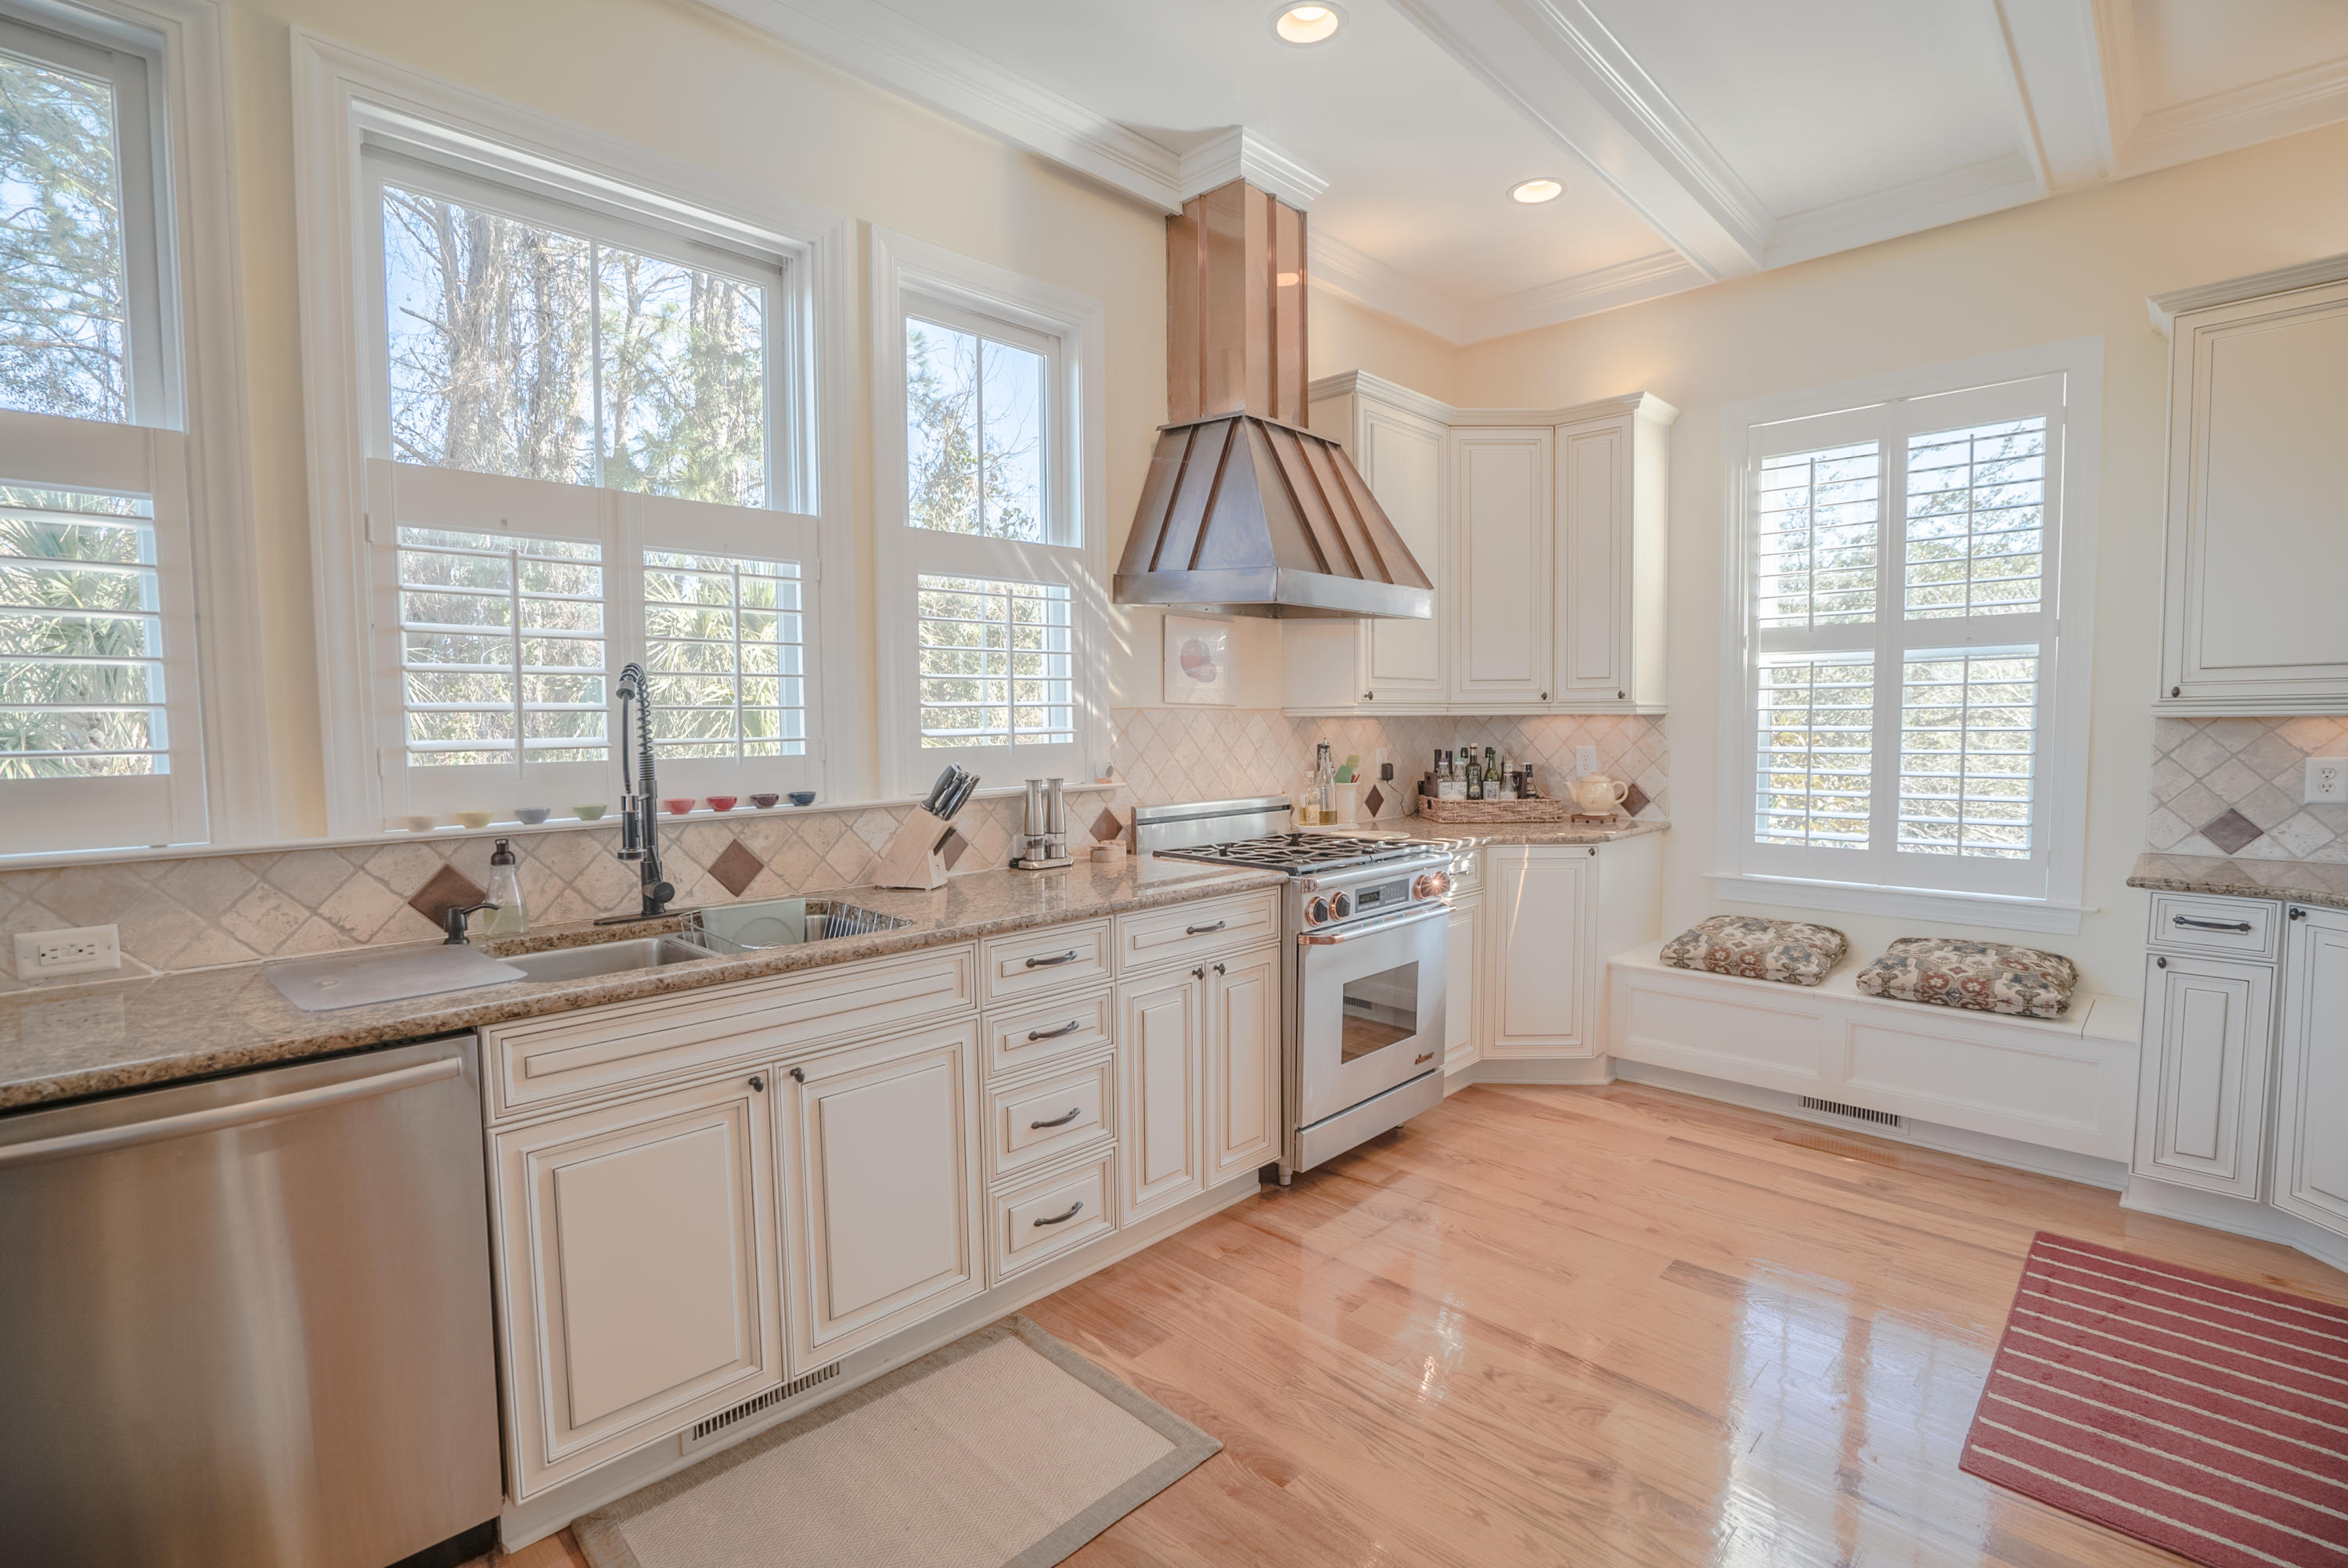 Home for sale 1745 Canyon Oaks Drive, Seaside Farms, Mt. Pleasant, SC